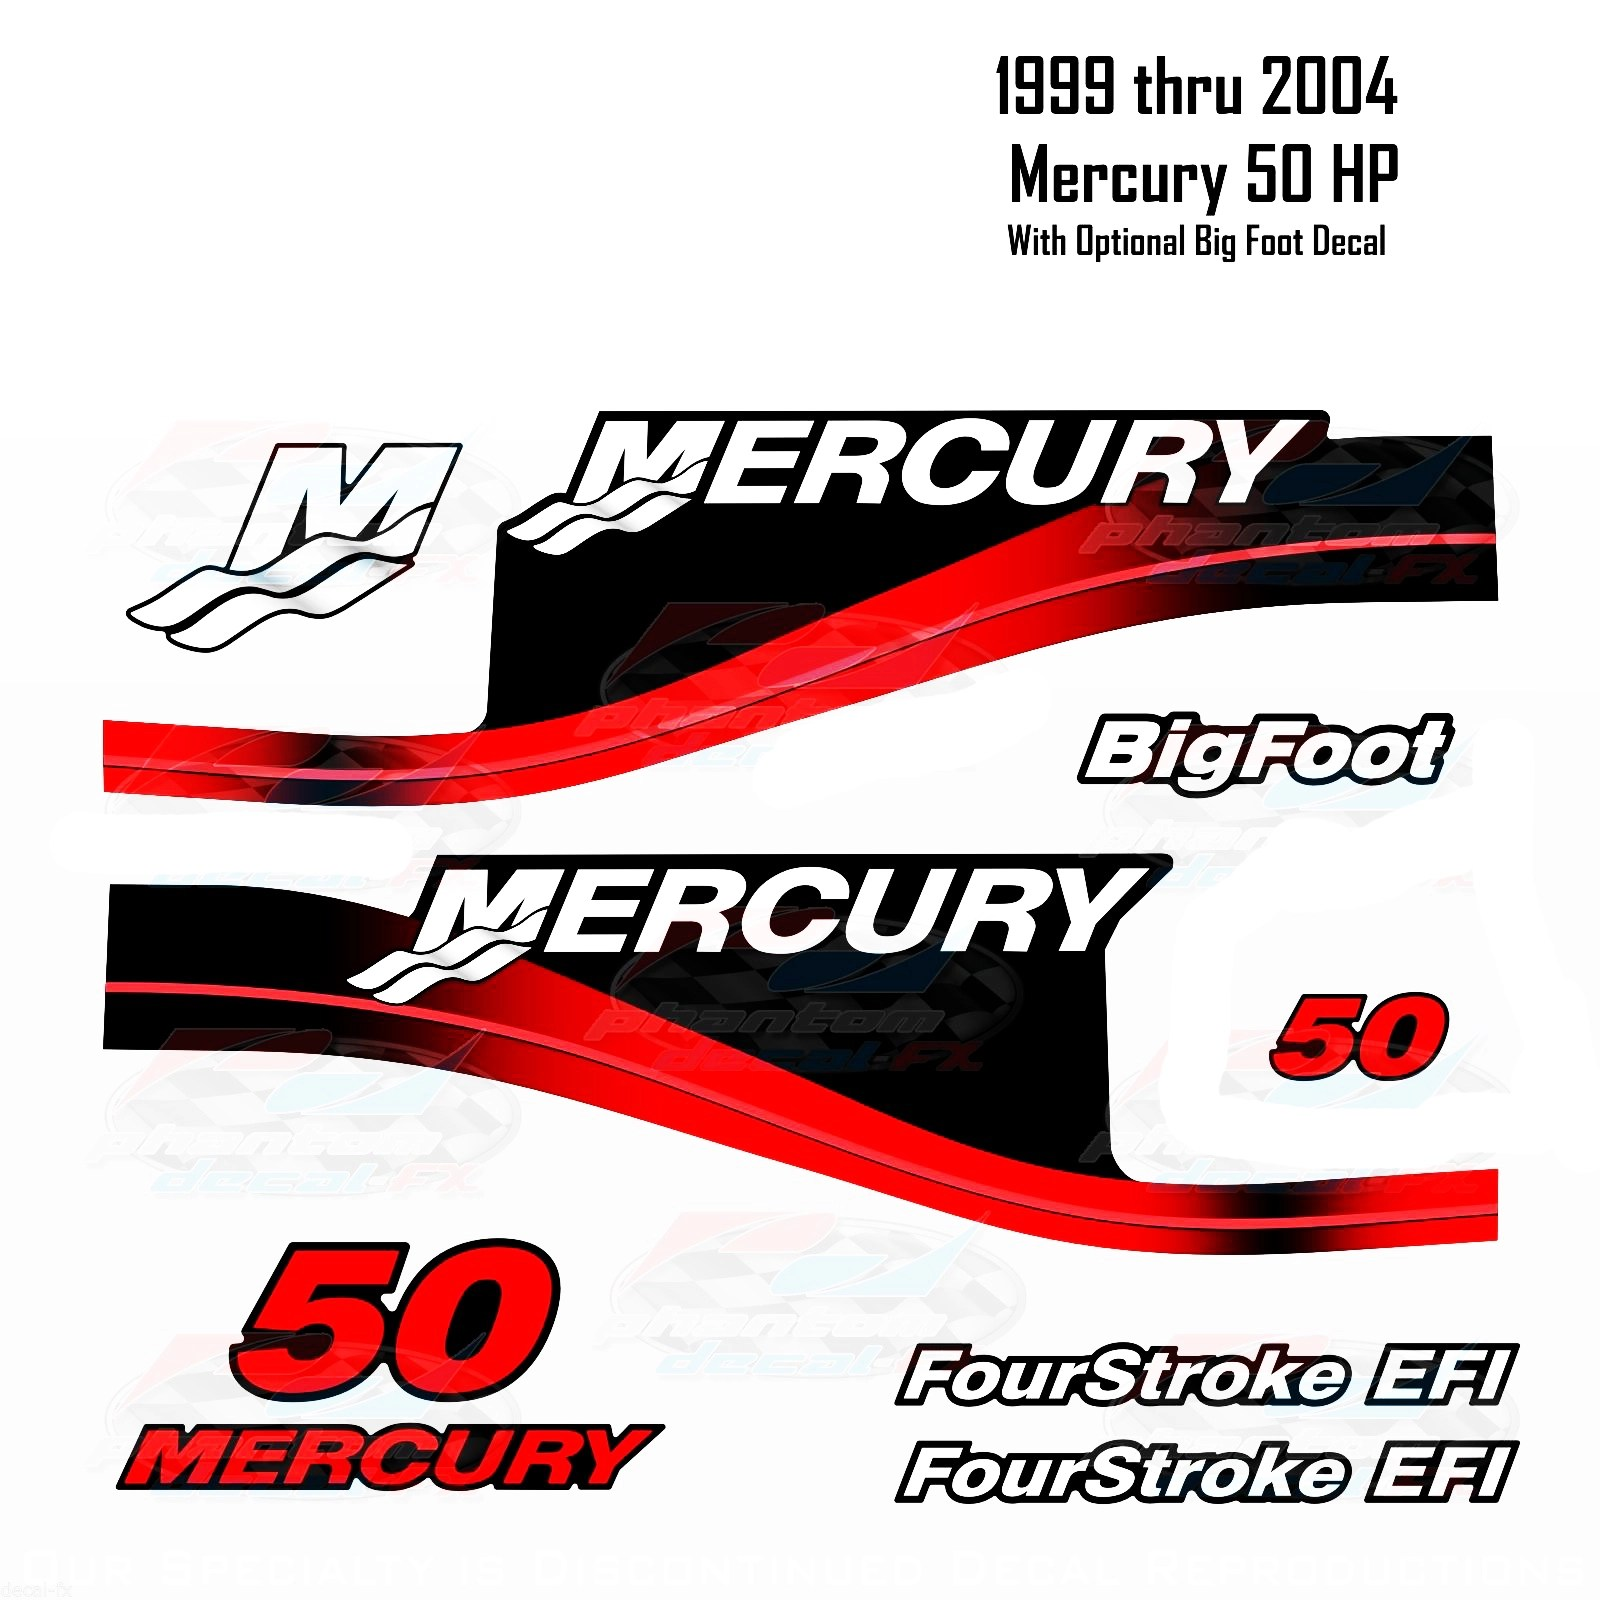 hight resolution of 1999 2004 mercury 50hp red decals two four stroke efi bigfoot 11 pc repro